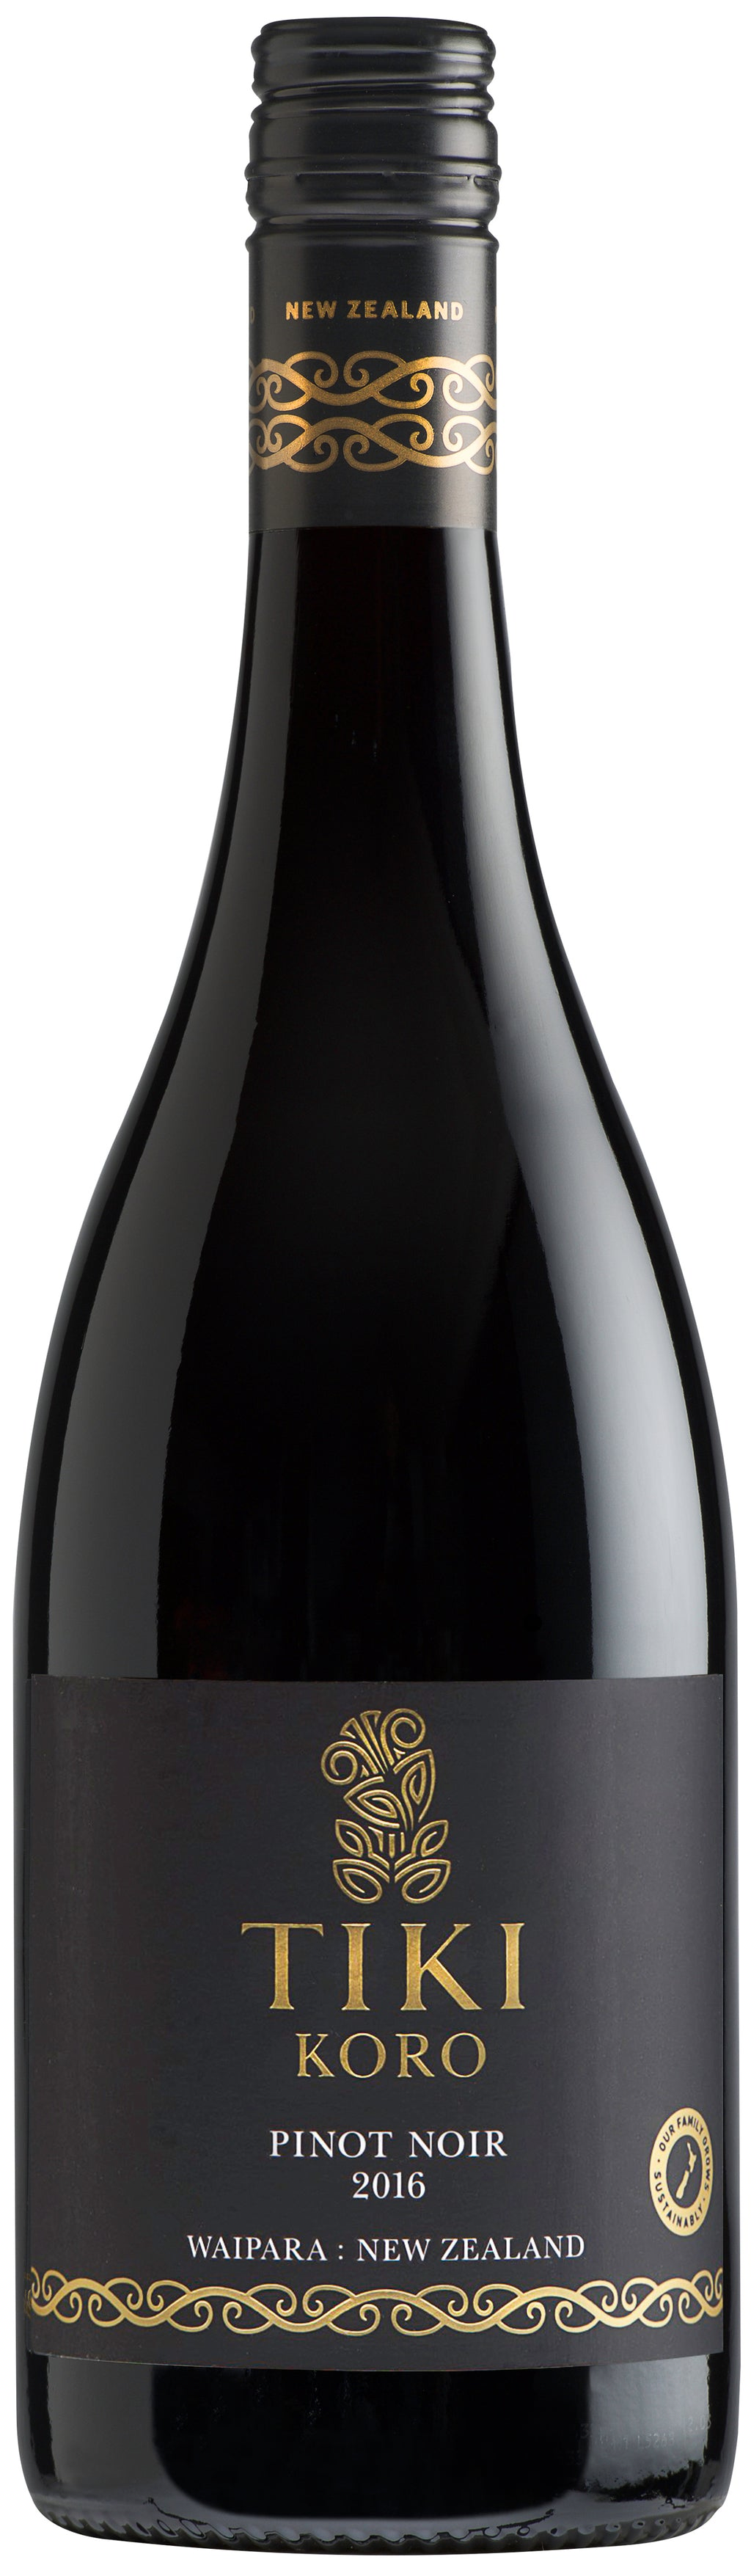 Tiki KORO Waipara Pinot Noir 2016 - $40 a bottle - $240 for a 6 pack